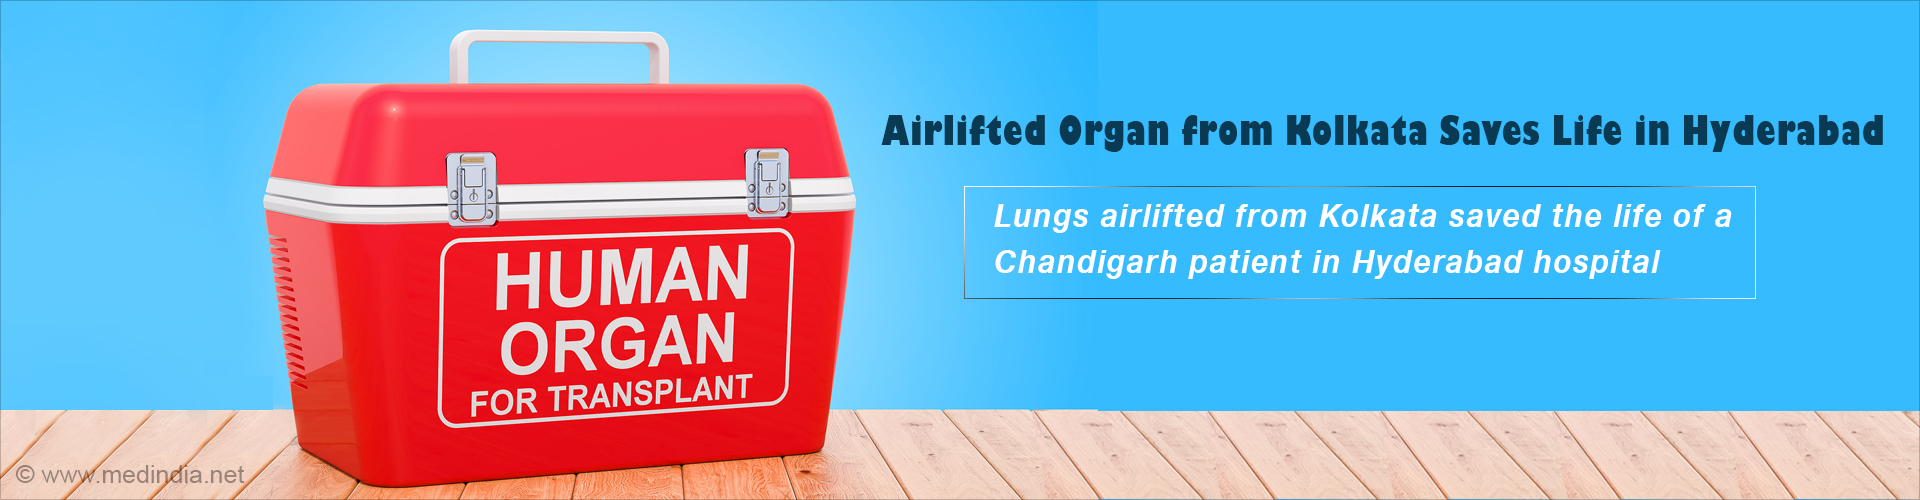 Lungs Travel from Kolkata to Hyderabad to Save Life of Chandigarh Patient